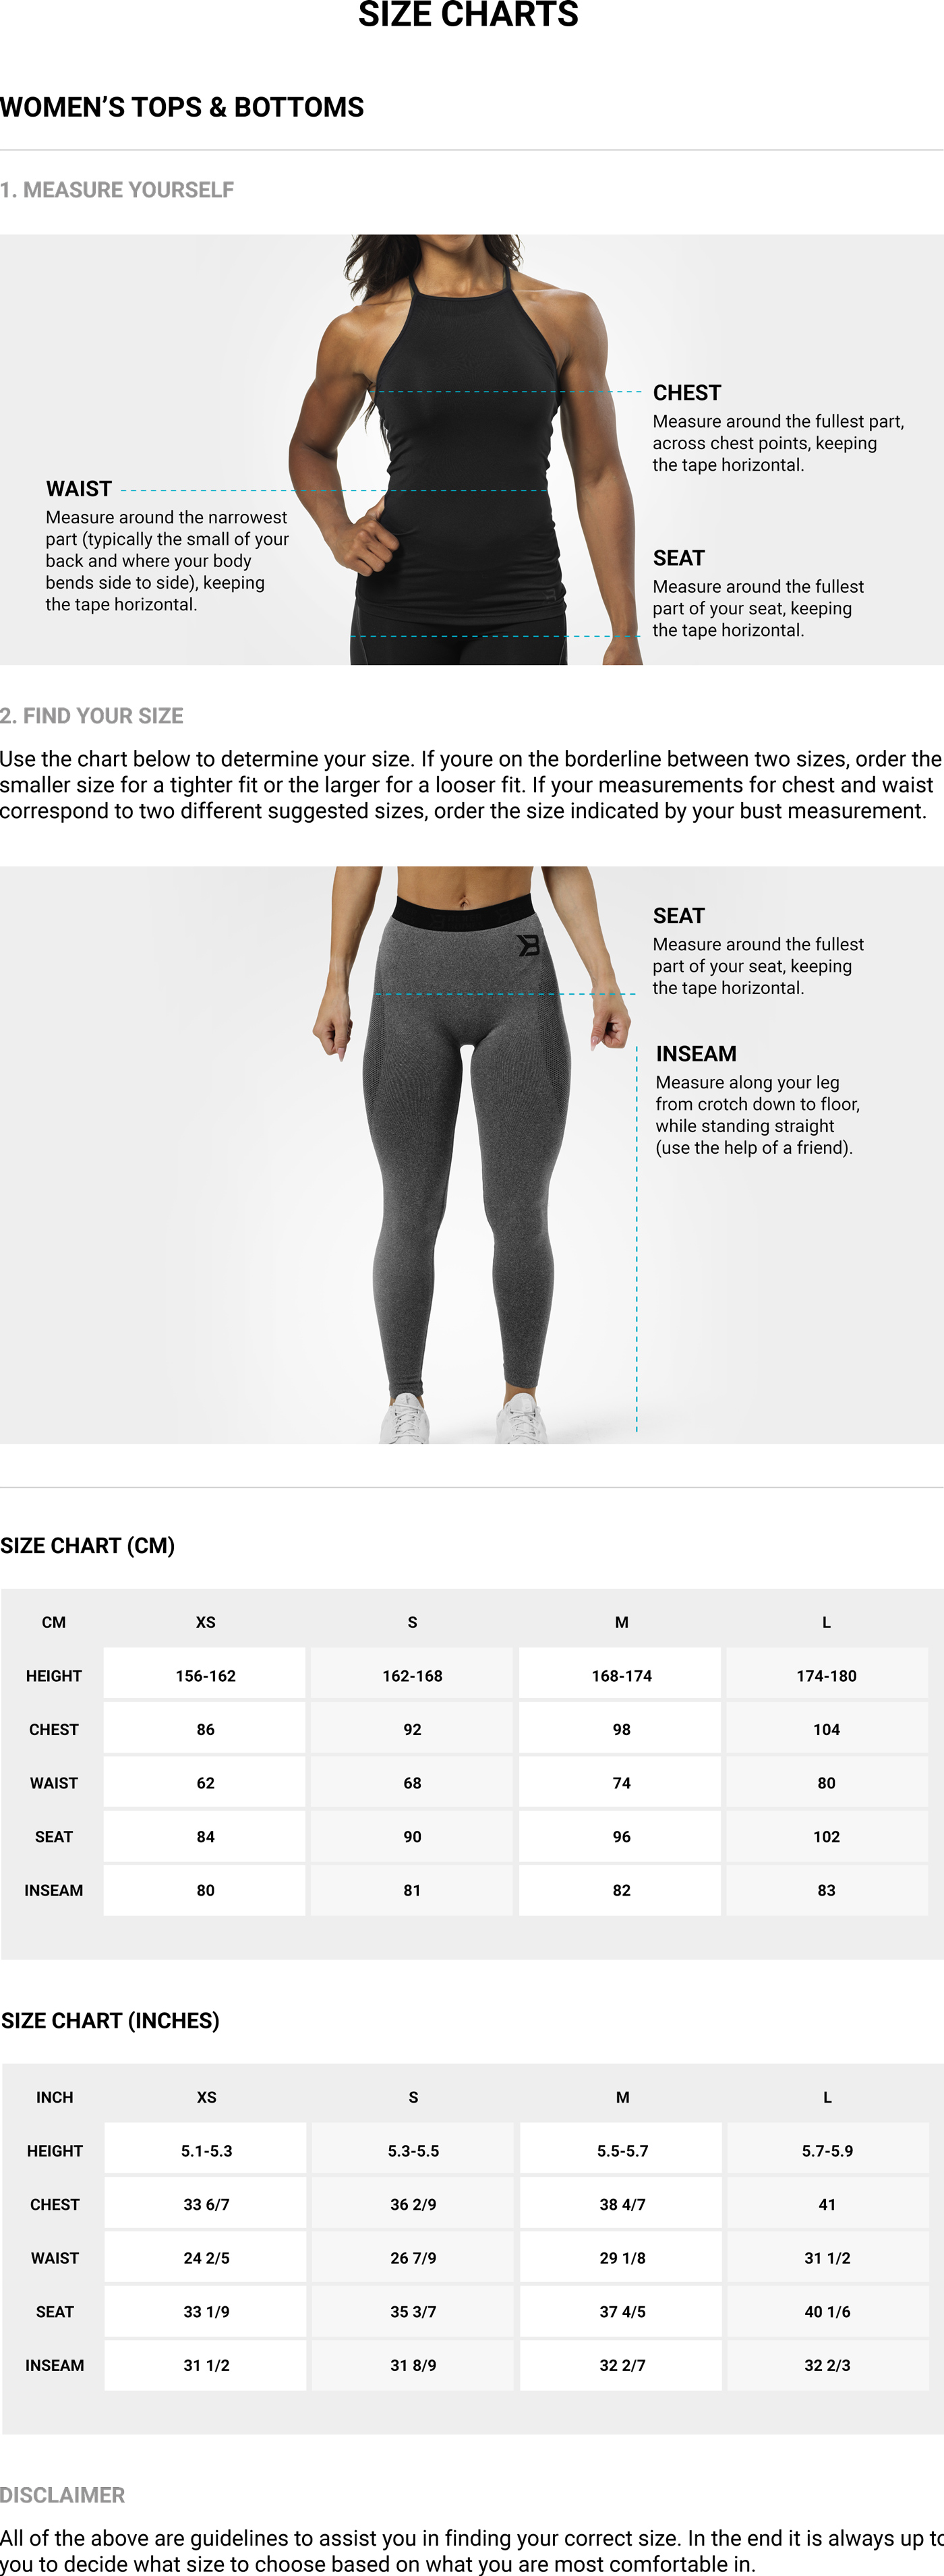 betterbodies womens measurements mauidesign-(1400px-wide)